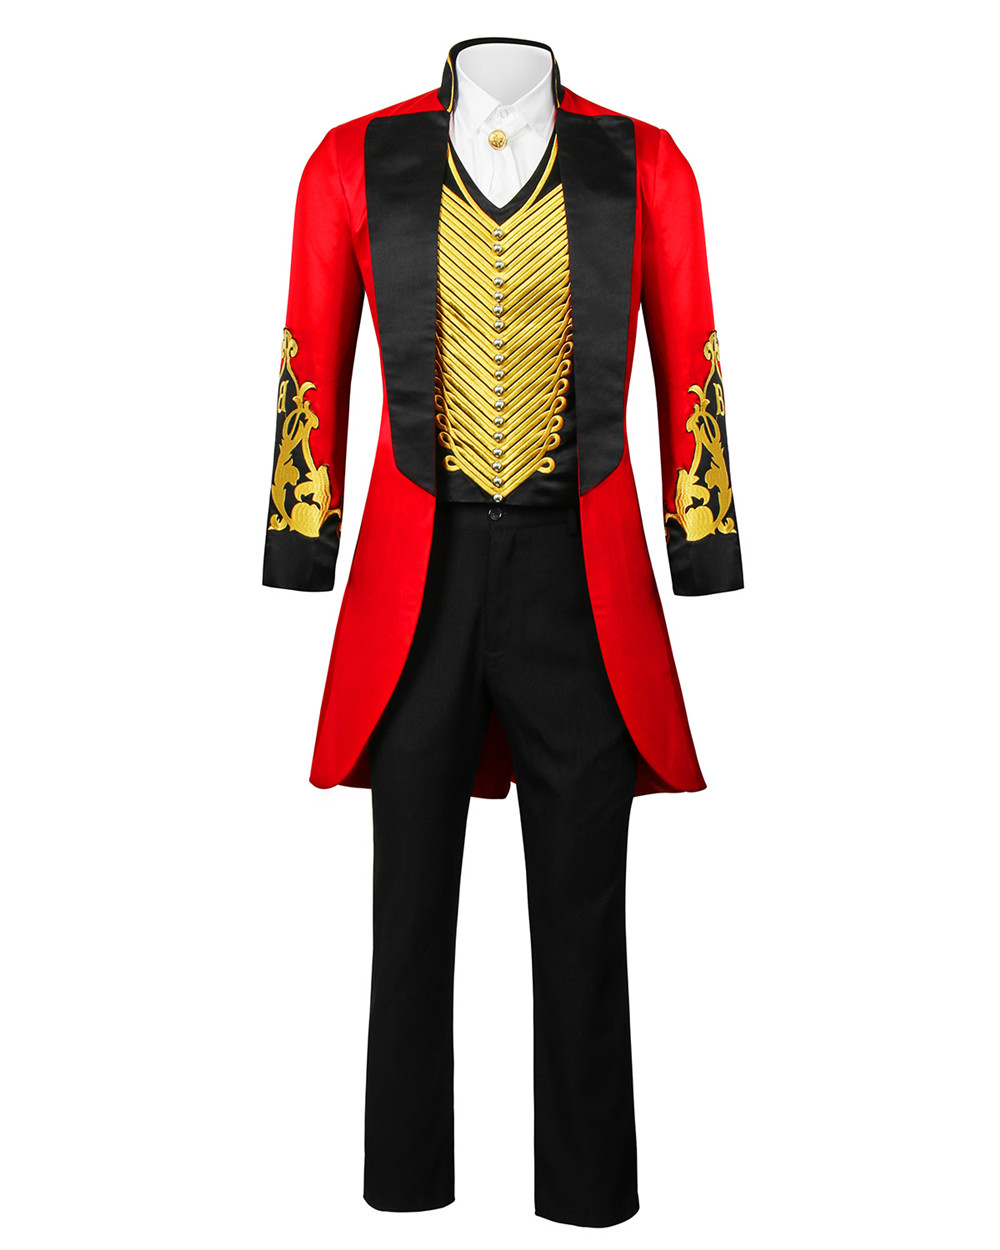 Image 2 - The Greatest Showman P.T. Barnum Cosplay Costume Outfit Adult Men Full Set Uniform Halloween Carnival Cosplay Outfit Custom Made-in Movie & TV costumes from Novelty & Special Use